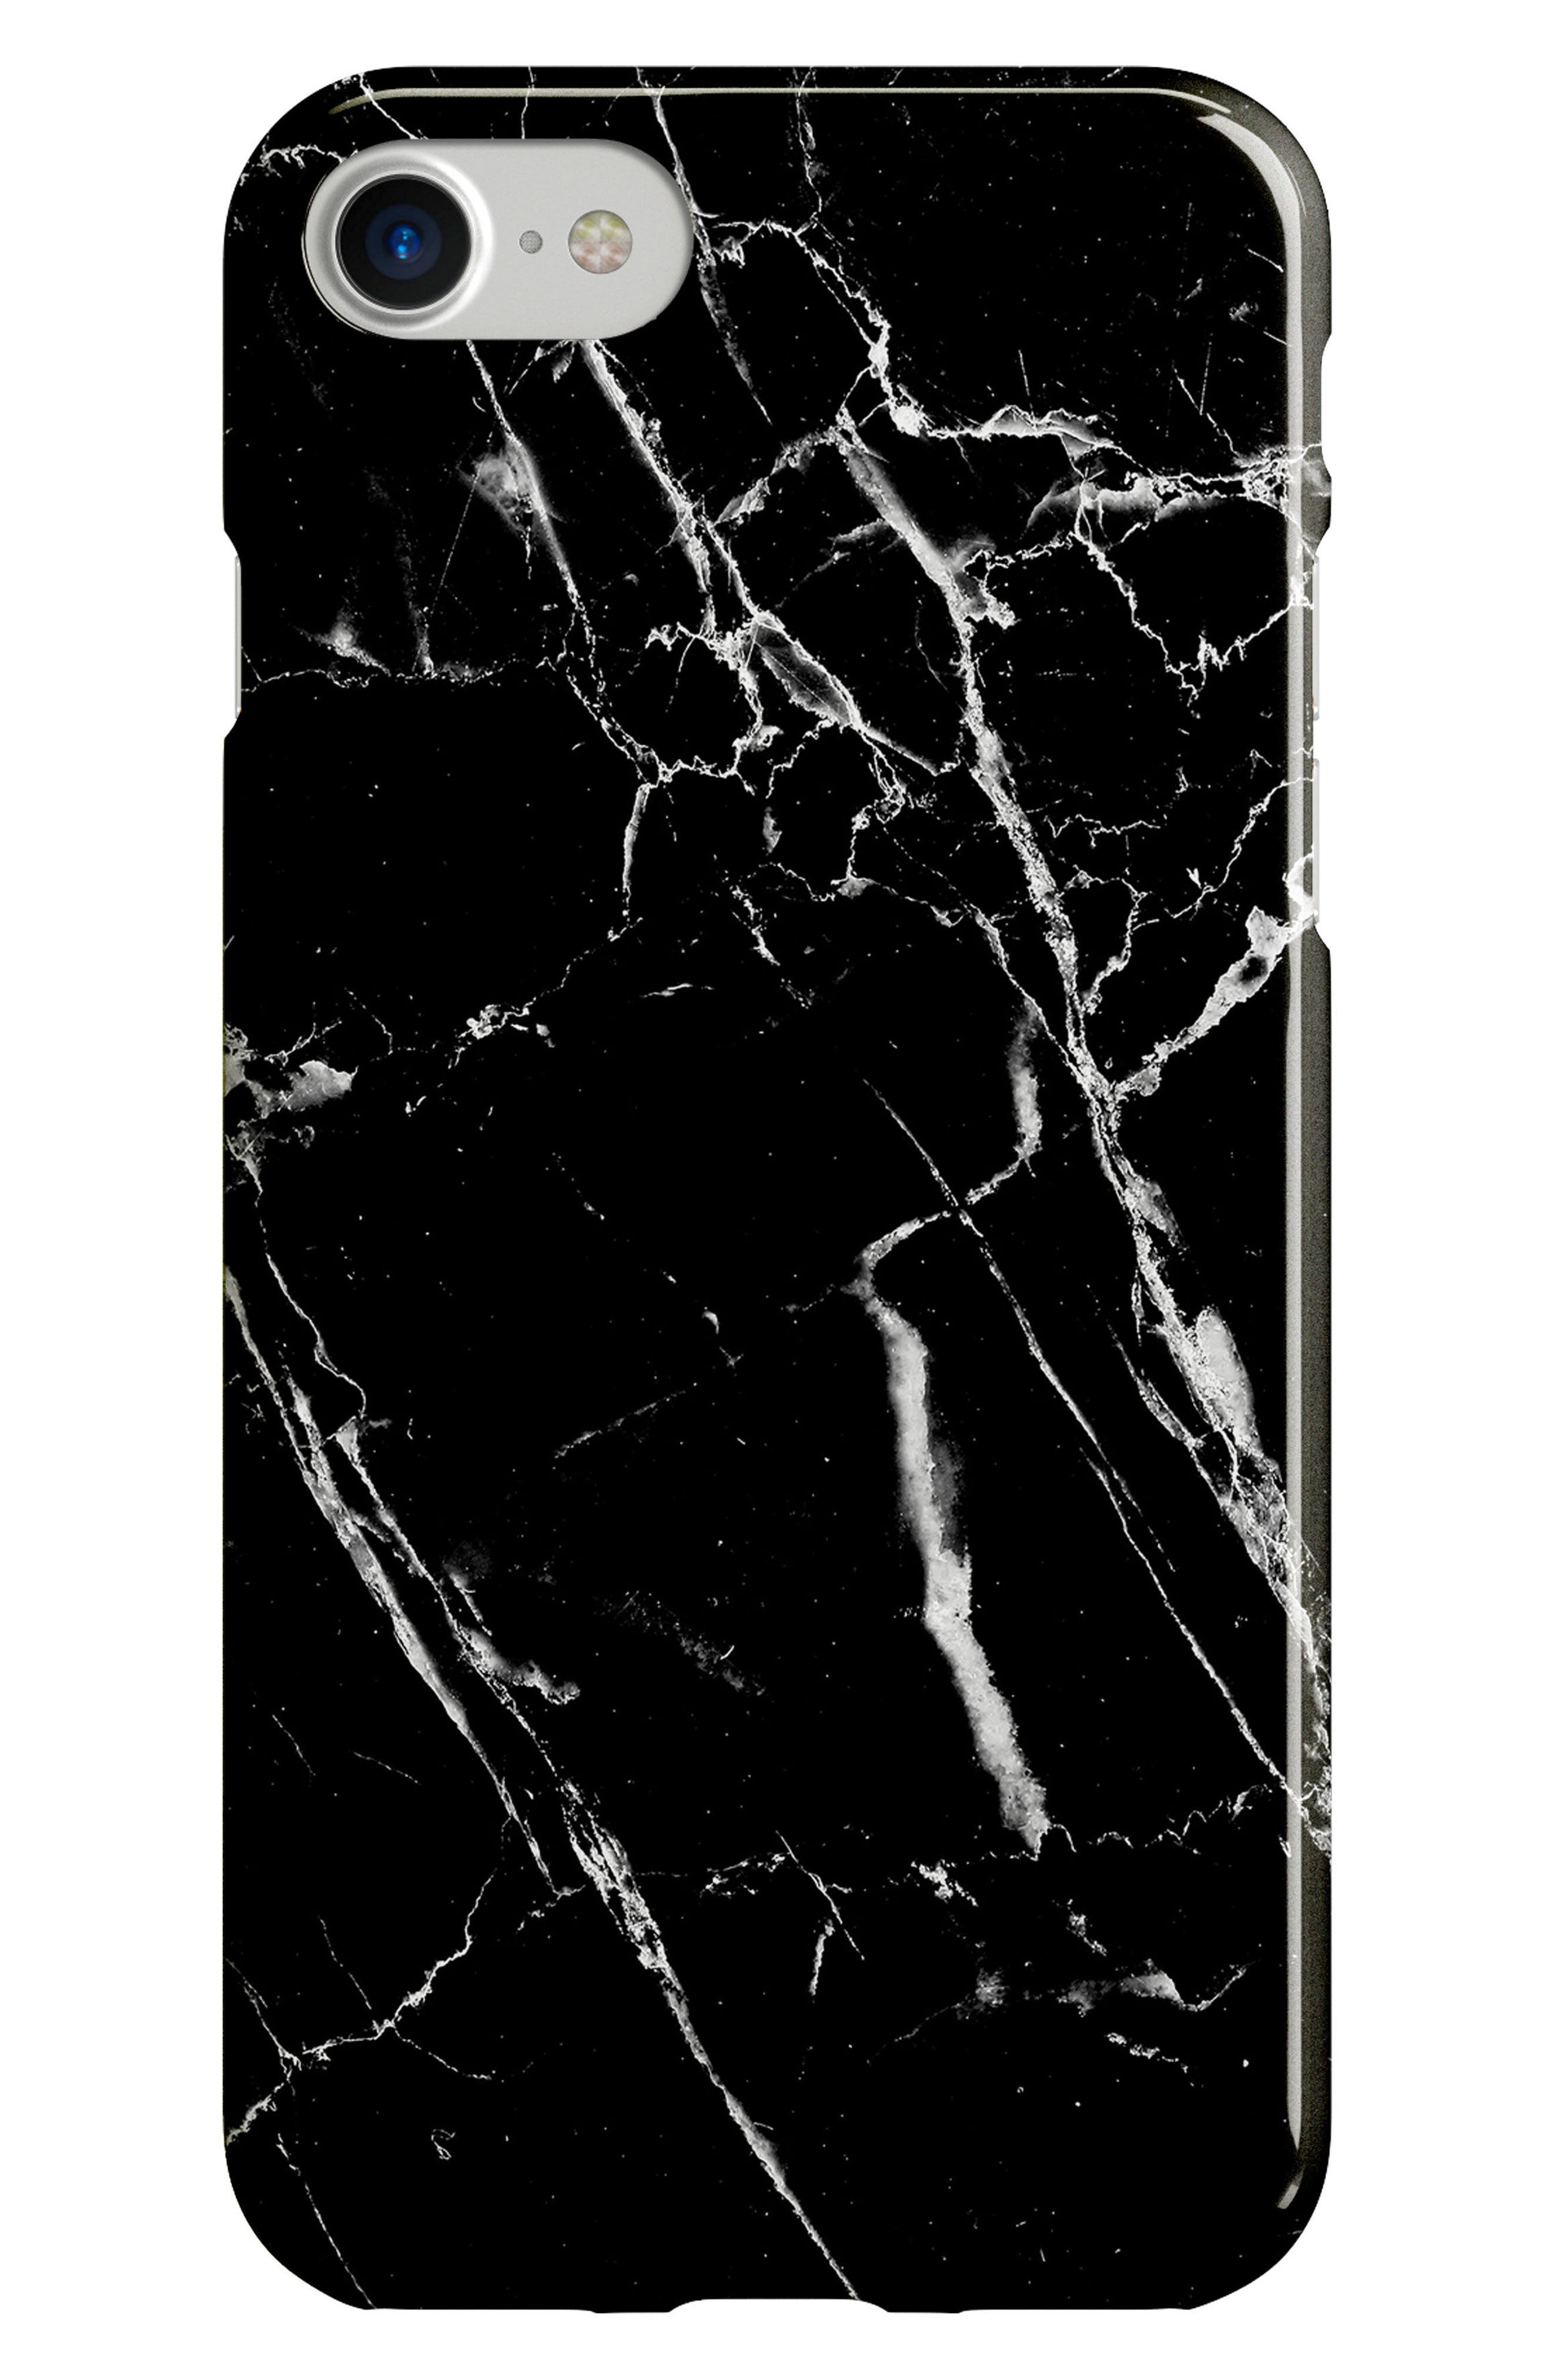 Main Image - Recover Black Marble iPhone 6/6s/7/8 Case